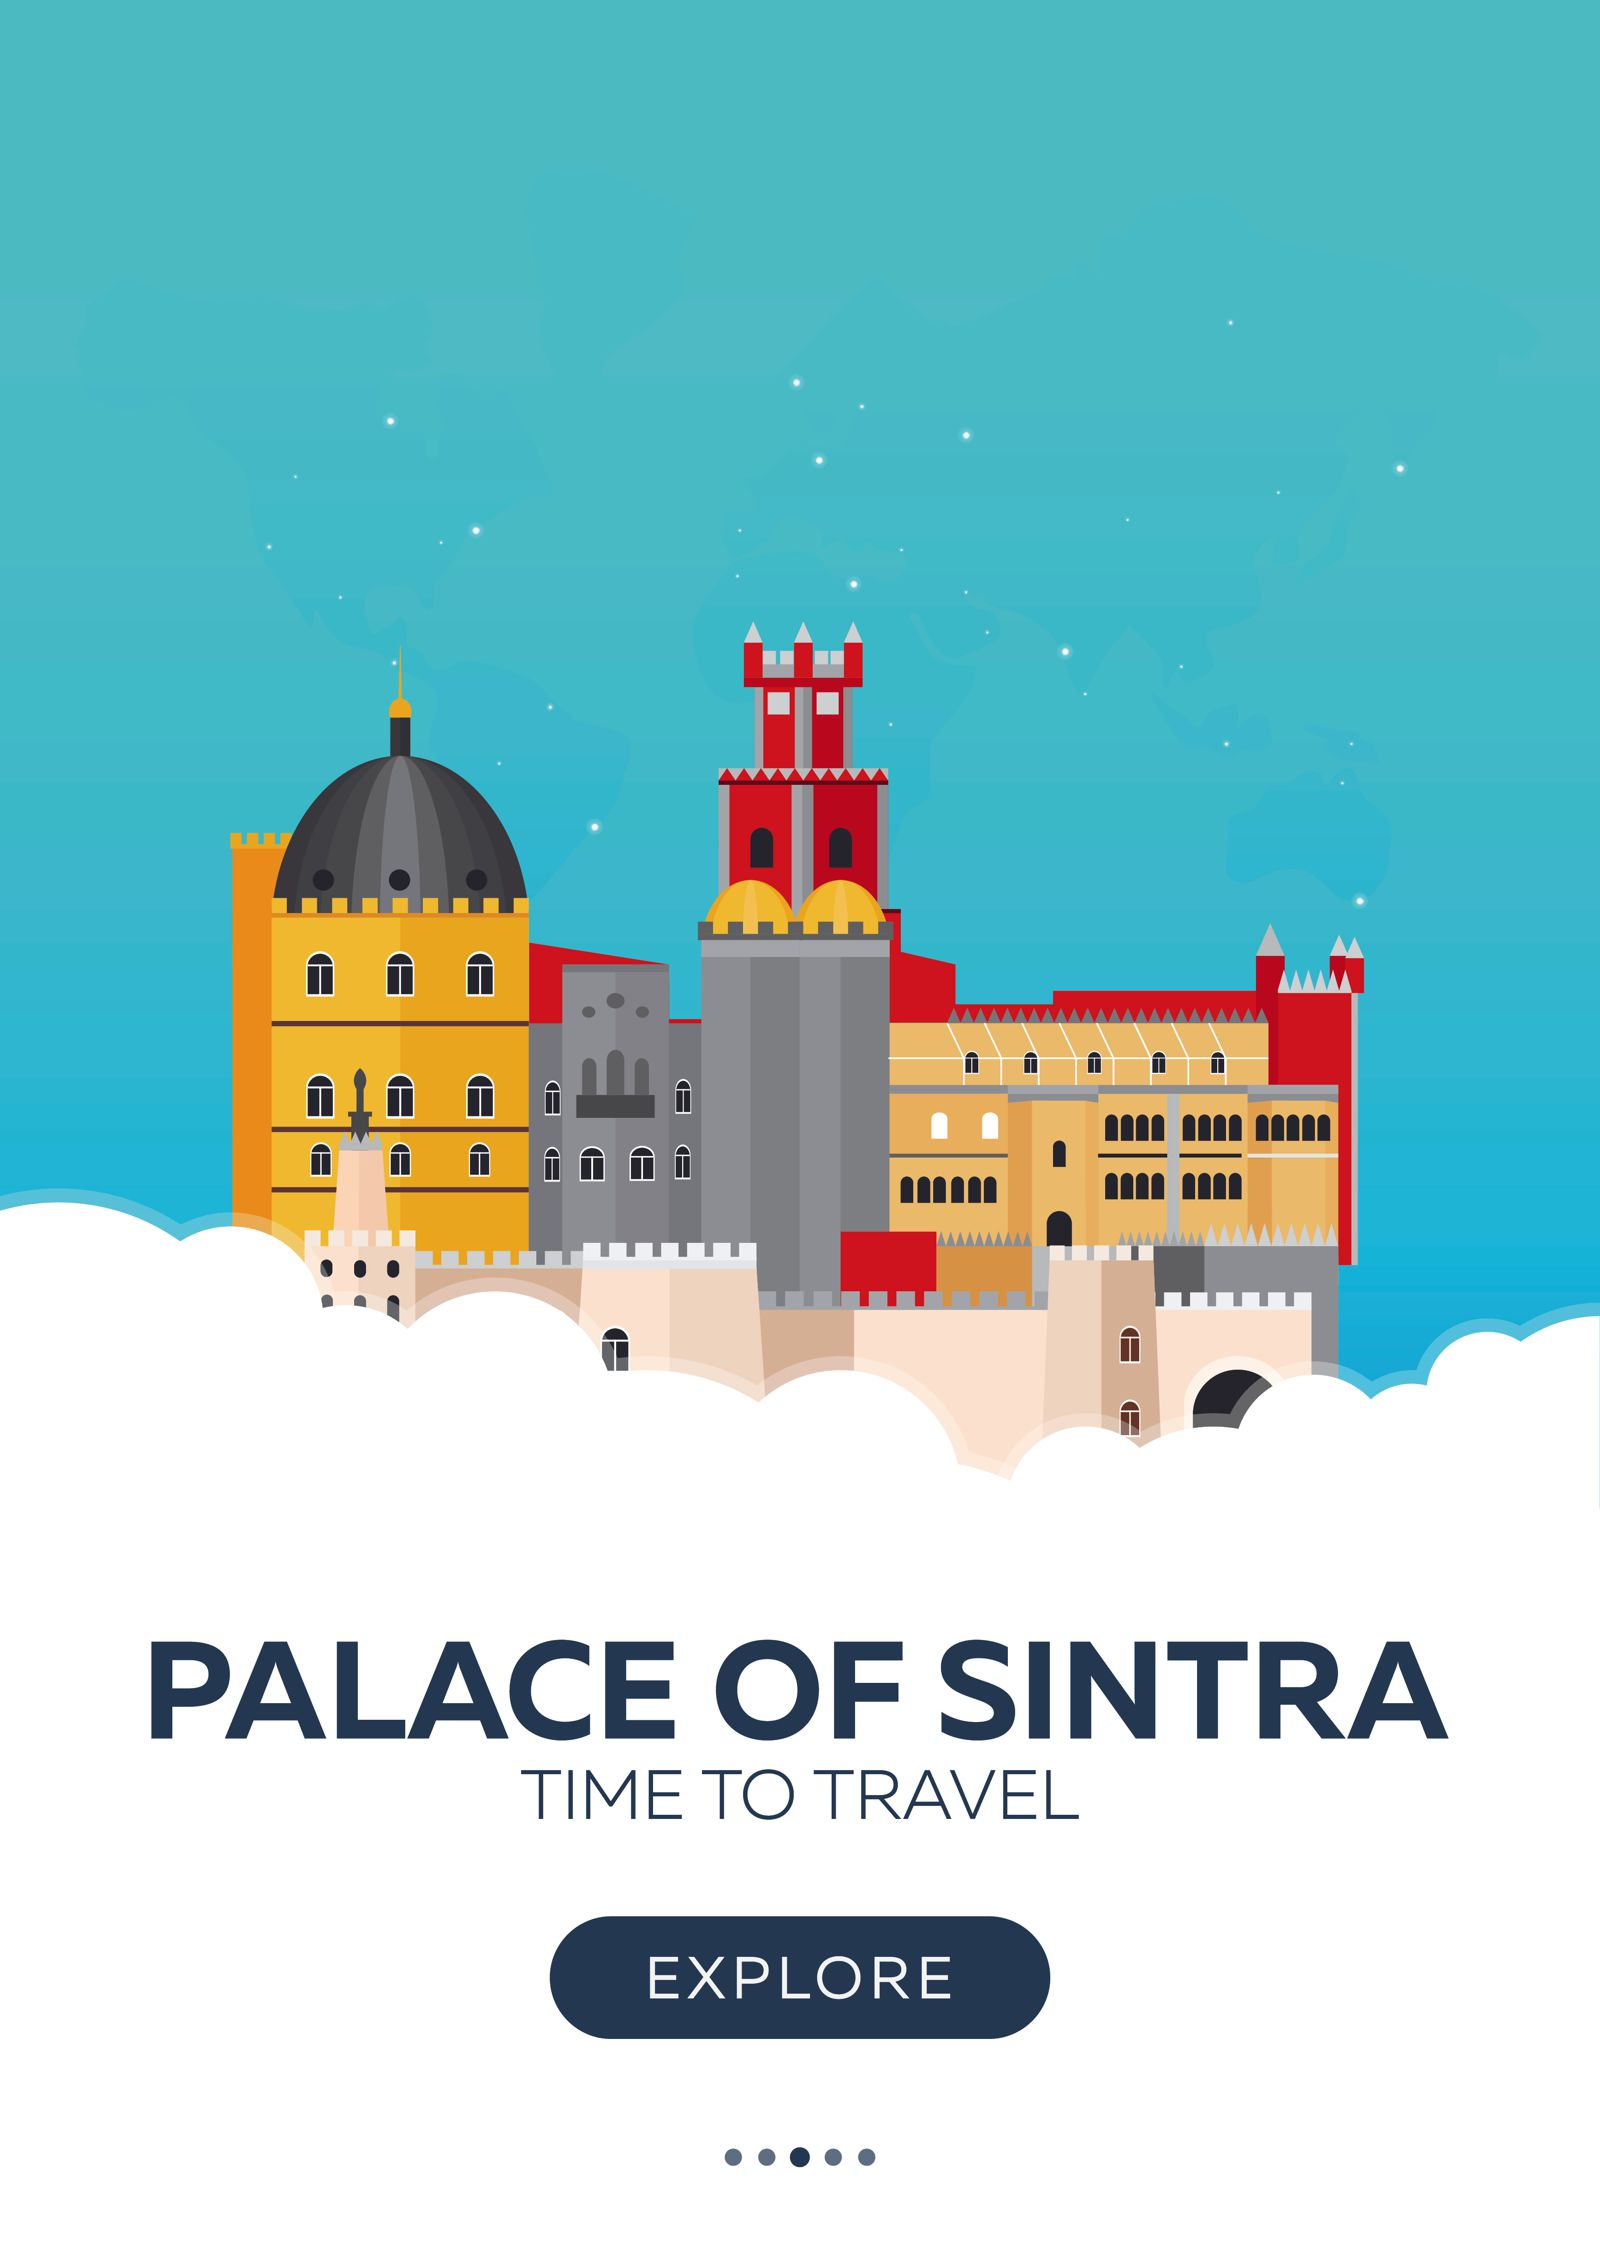 Things to see in Sintra